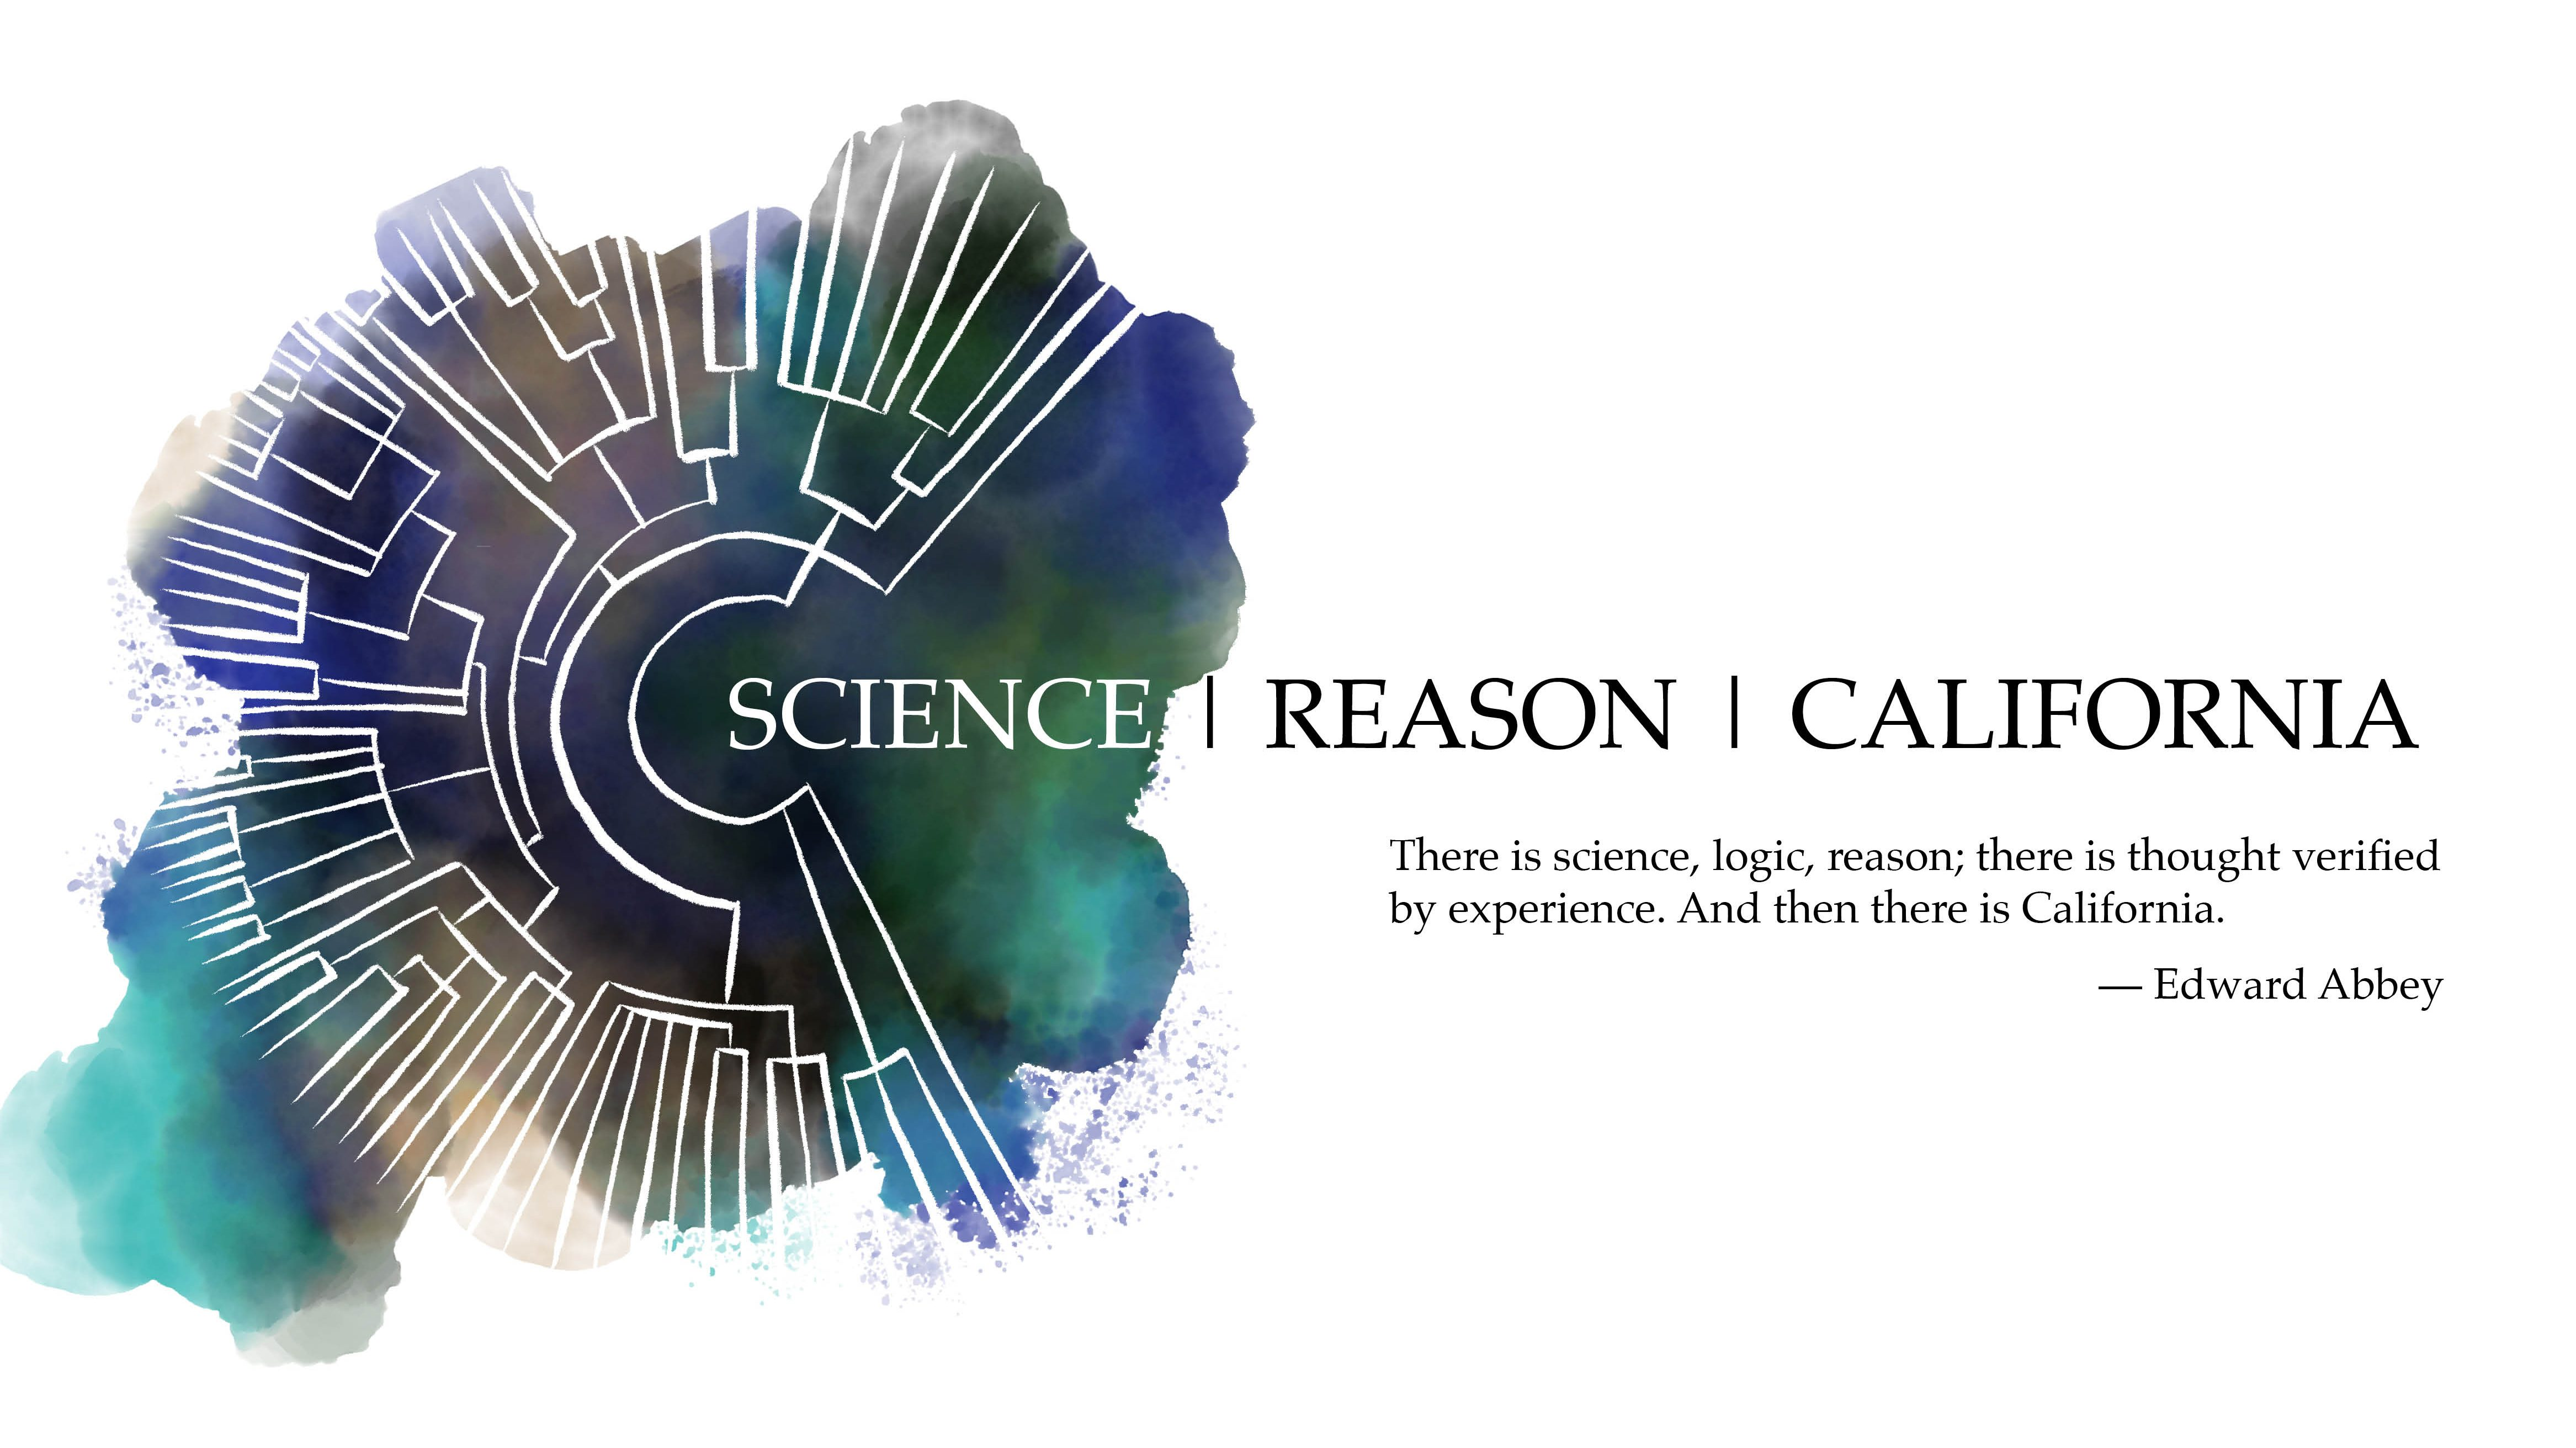 Science Reason California